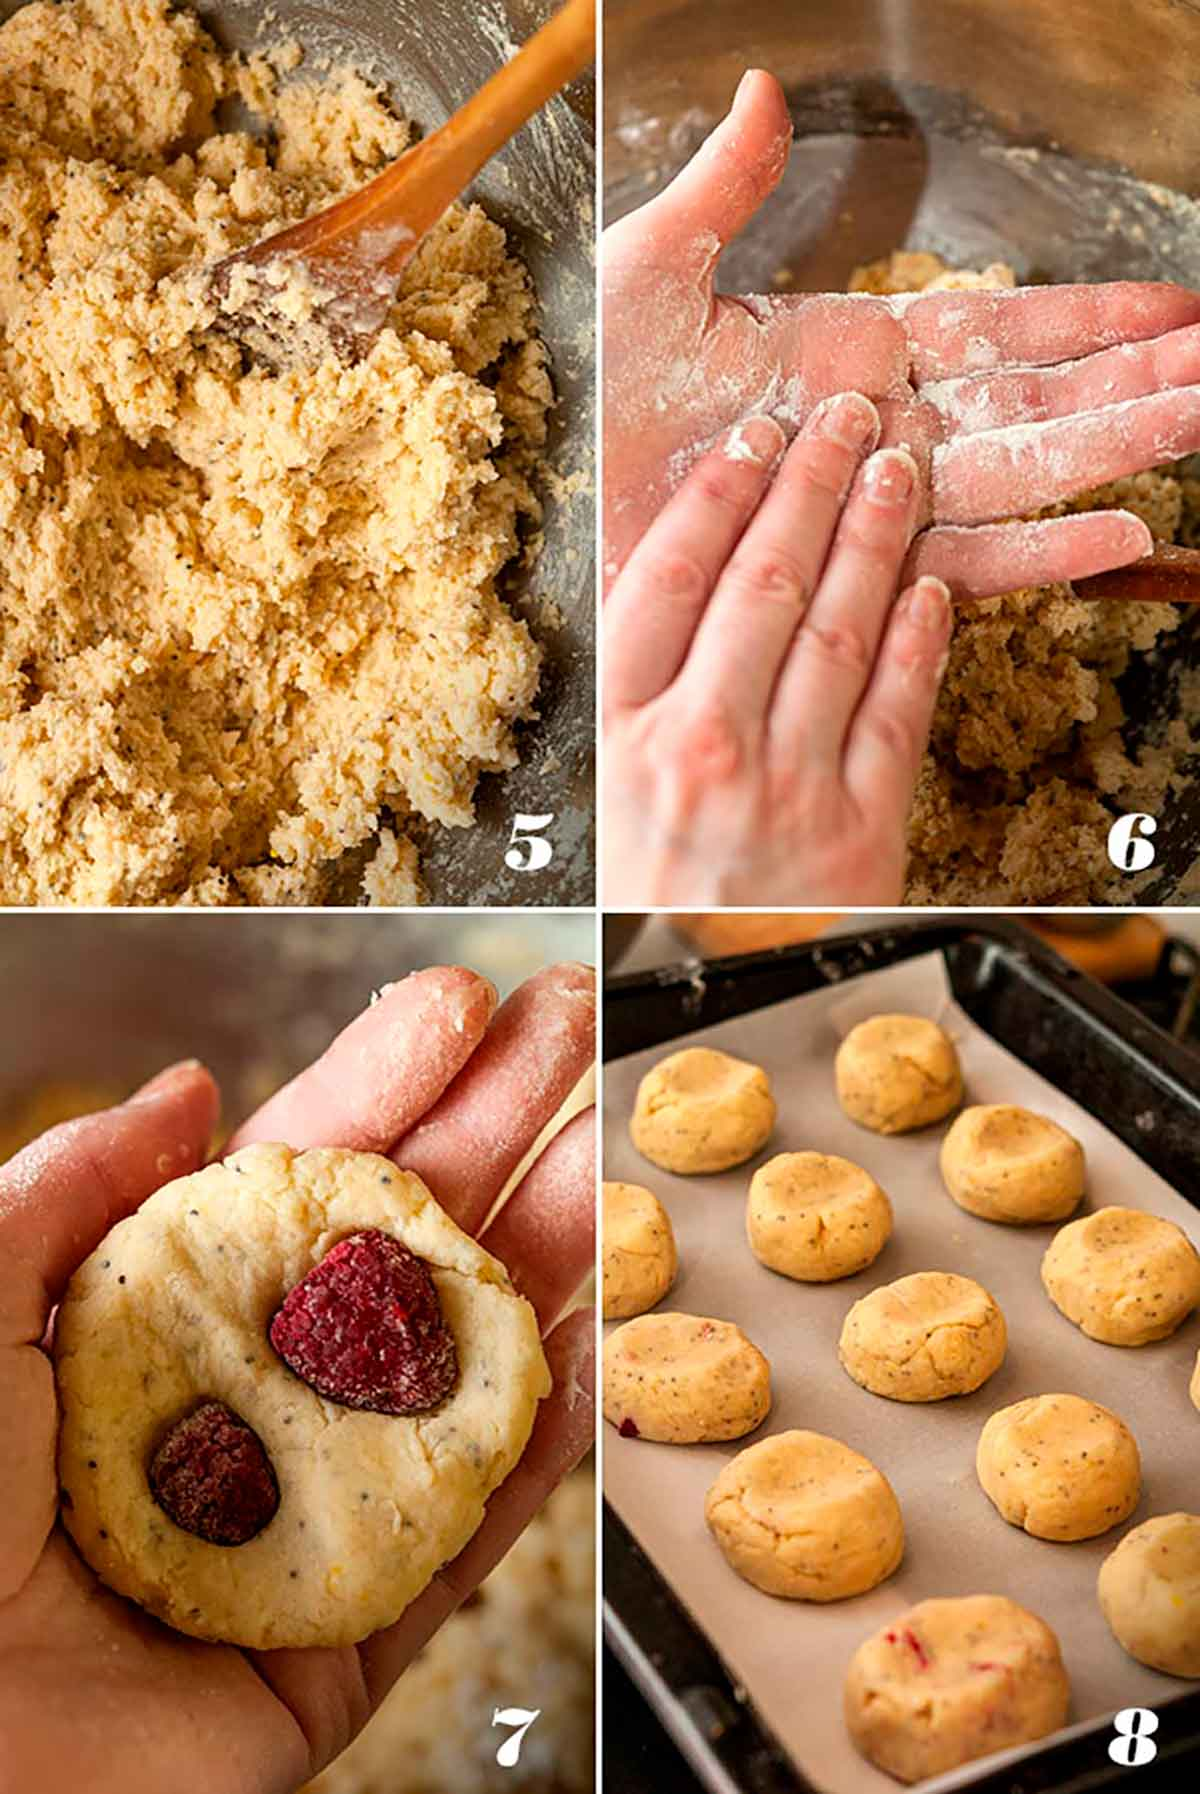 A collage of 4 numbered images showing how to make glazed raspberry lemon poppyseed scones.